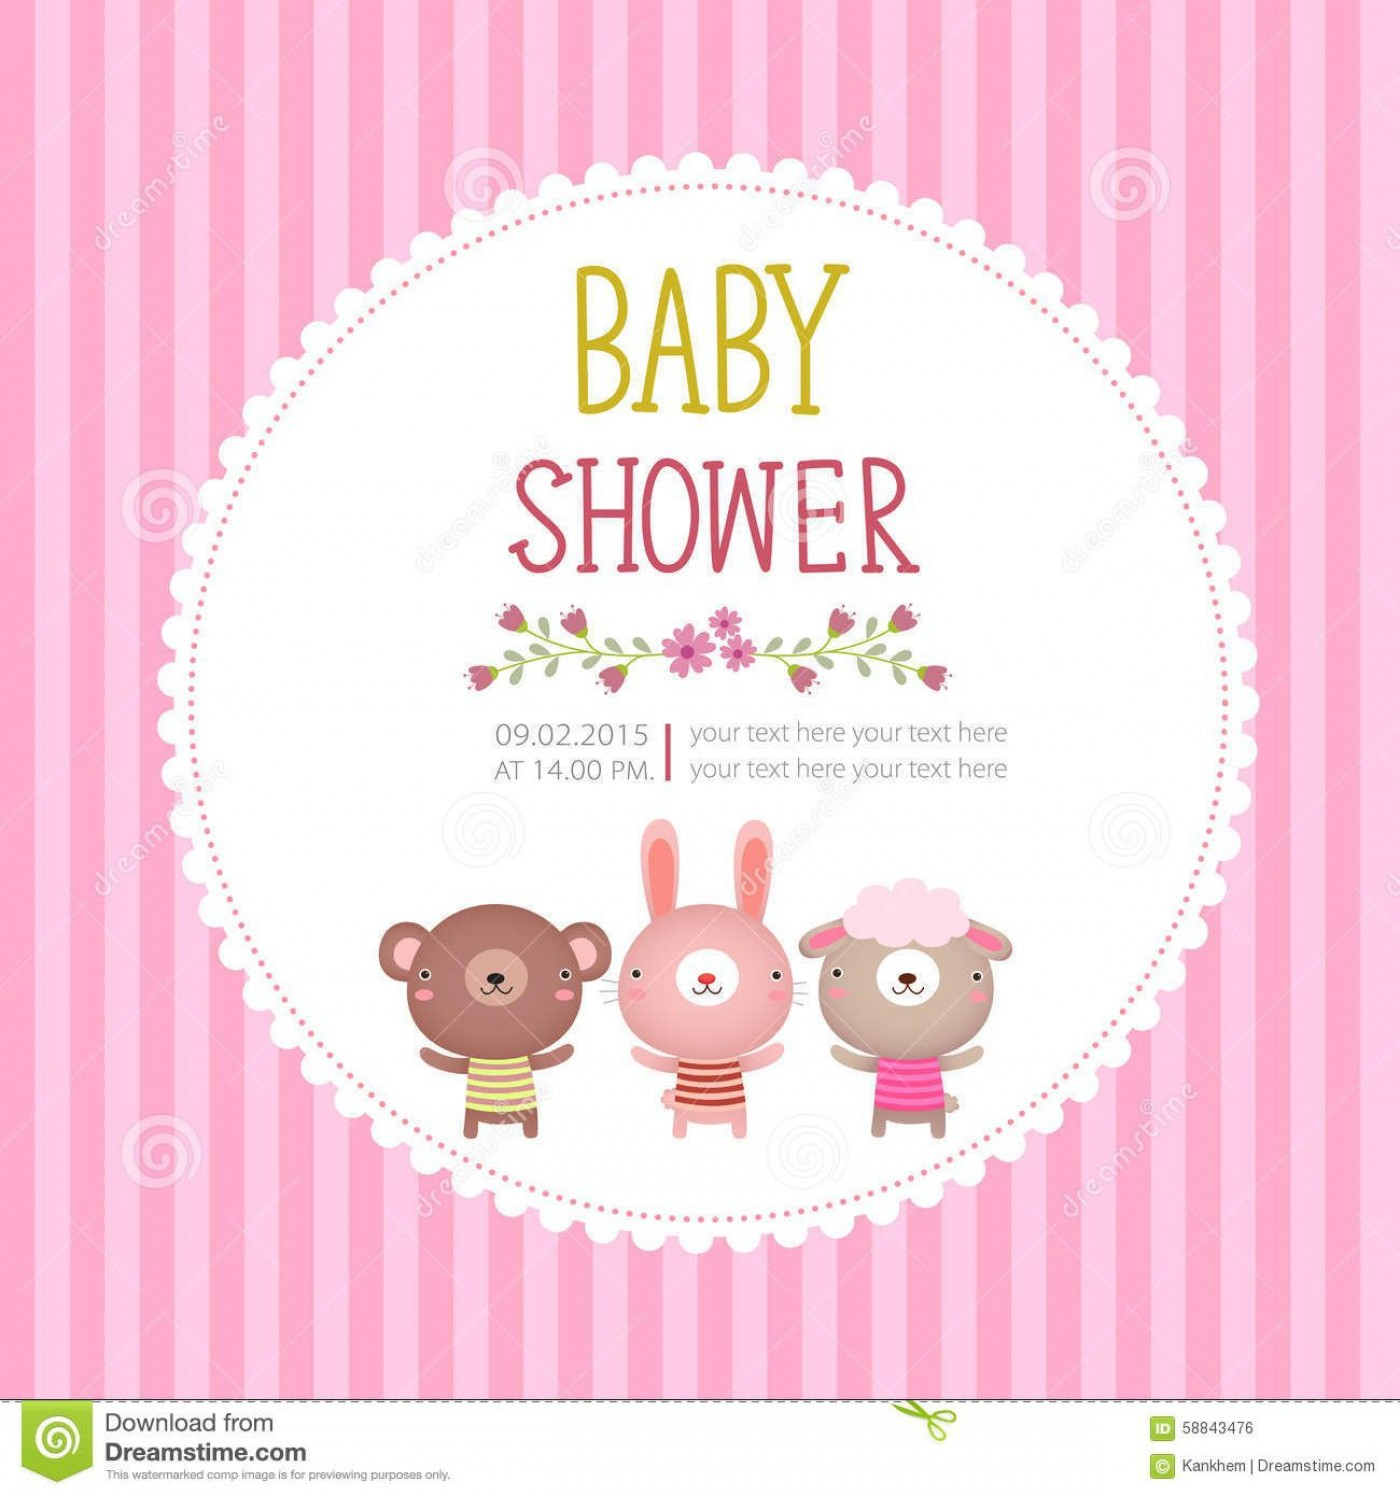 003 Shocking Baby Shower Invitation Card Template Free Download Highest Quality  Indian1400